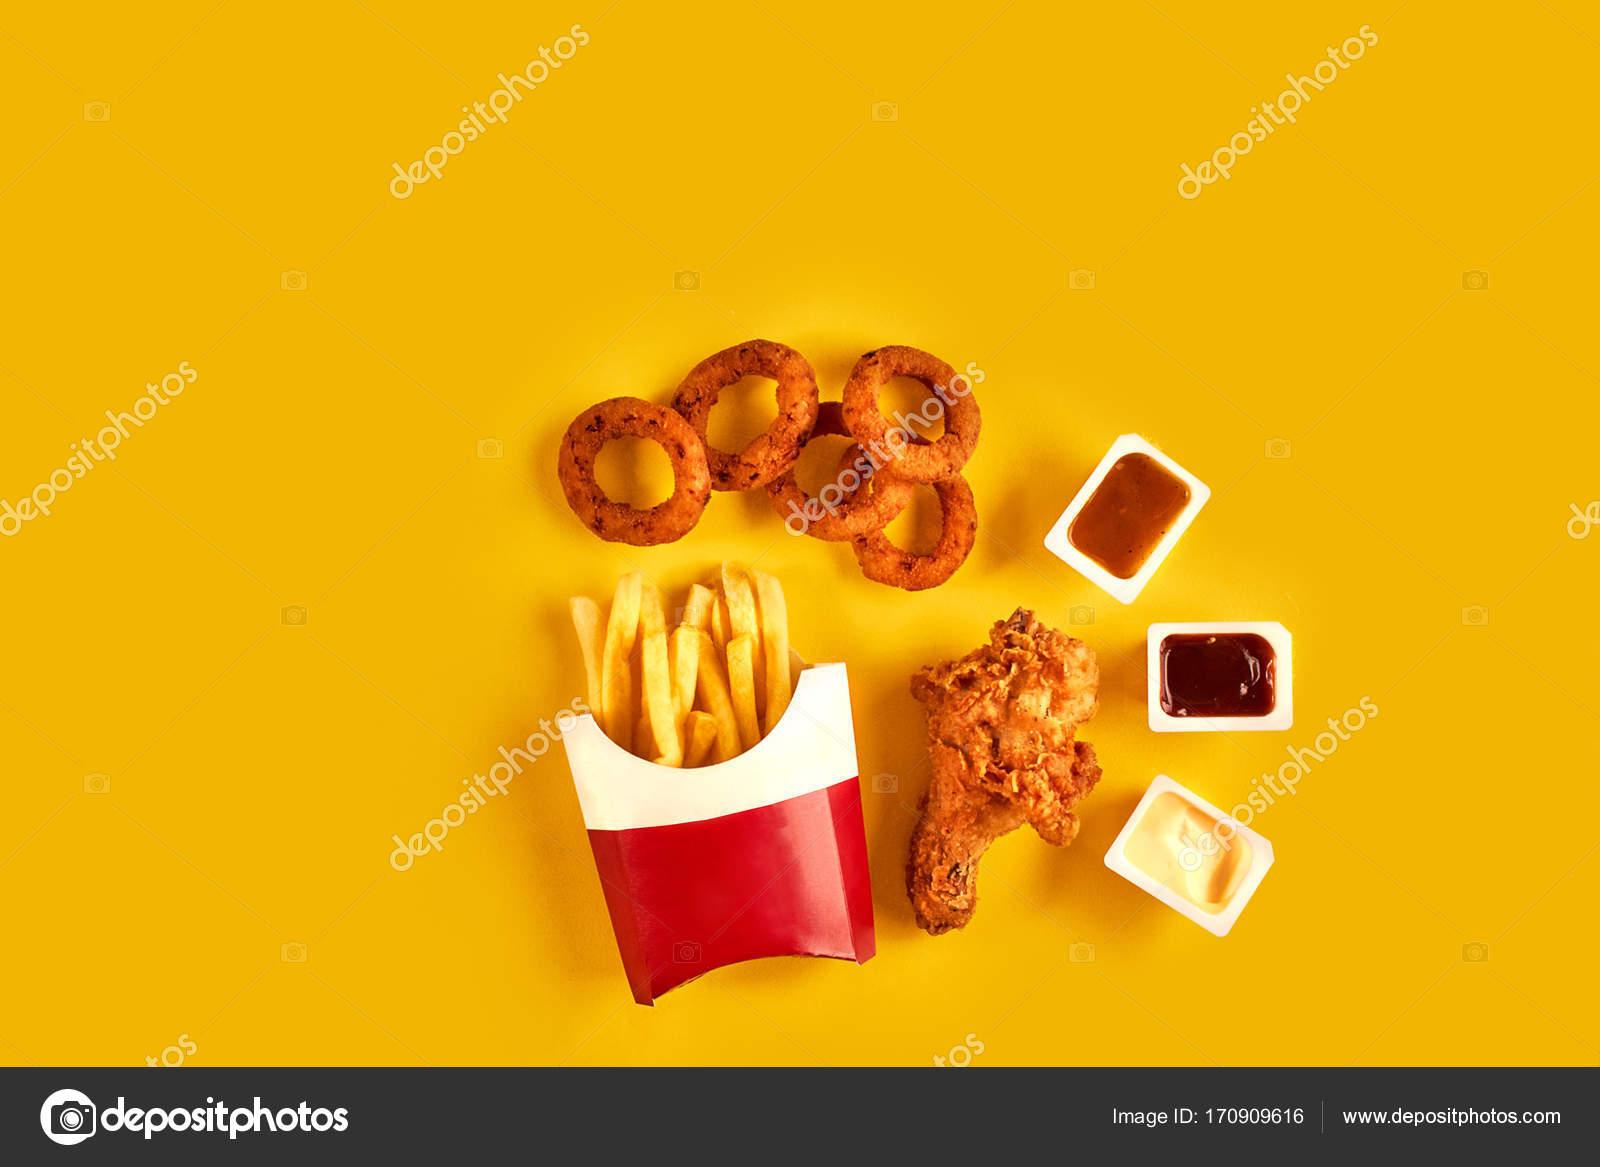 Take Away Composition French Fries Hamburger Mayonnaise And Ketchup Sauces On Yellow Background Menu Or Receipt Photo By